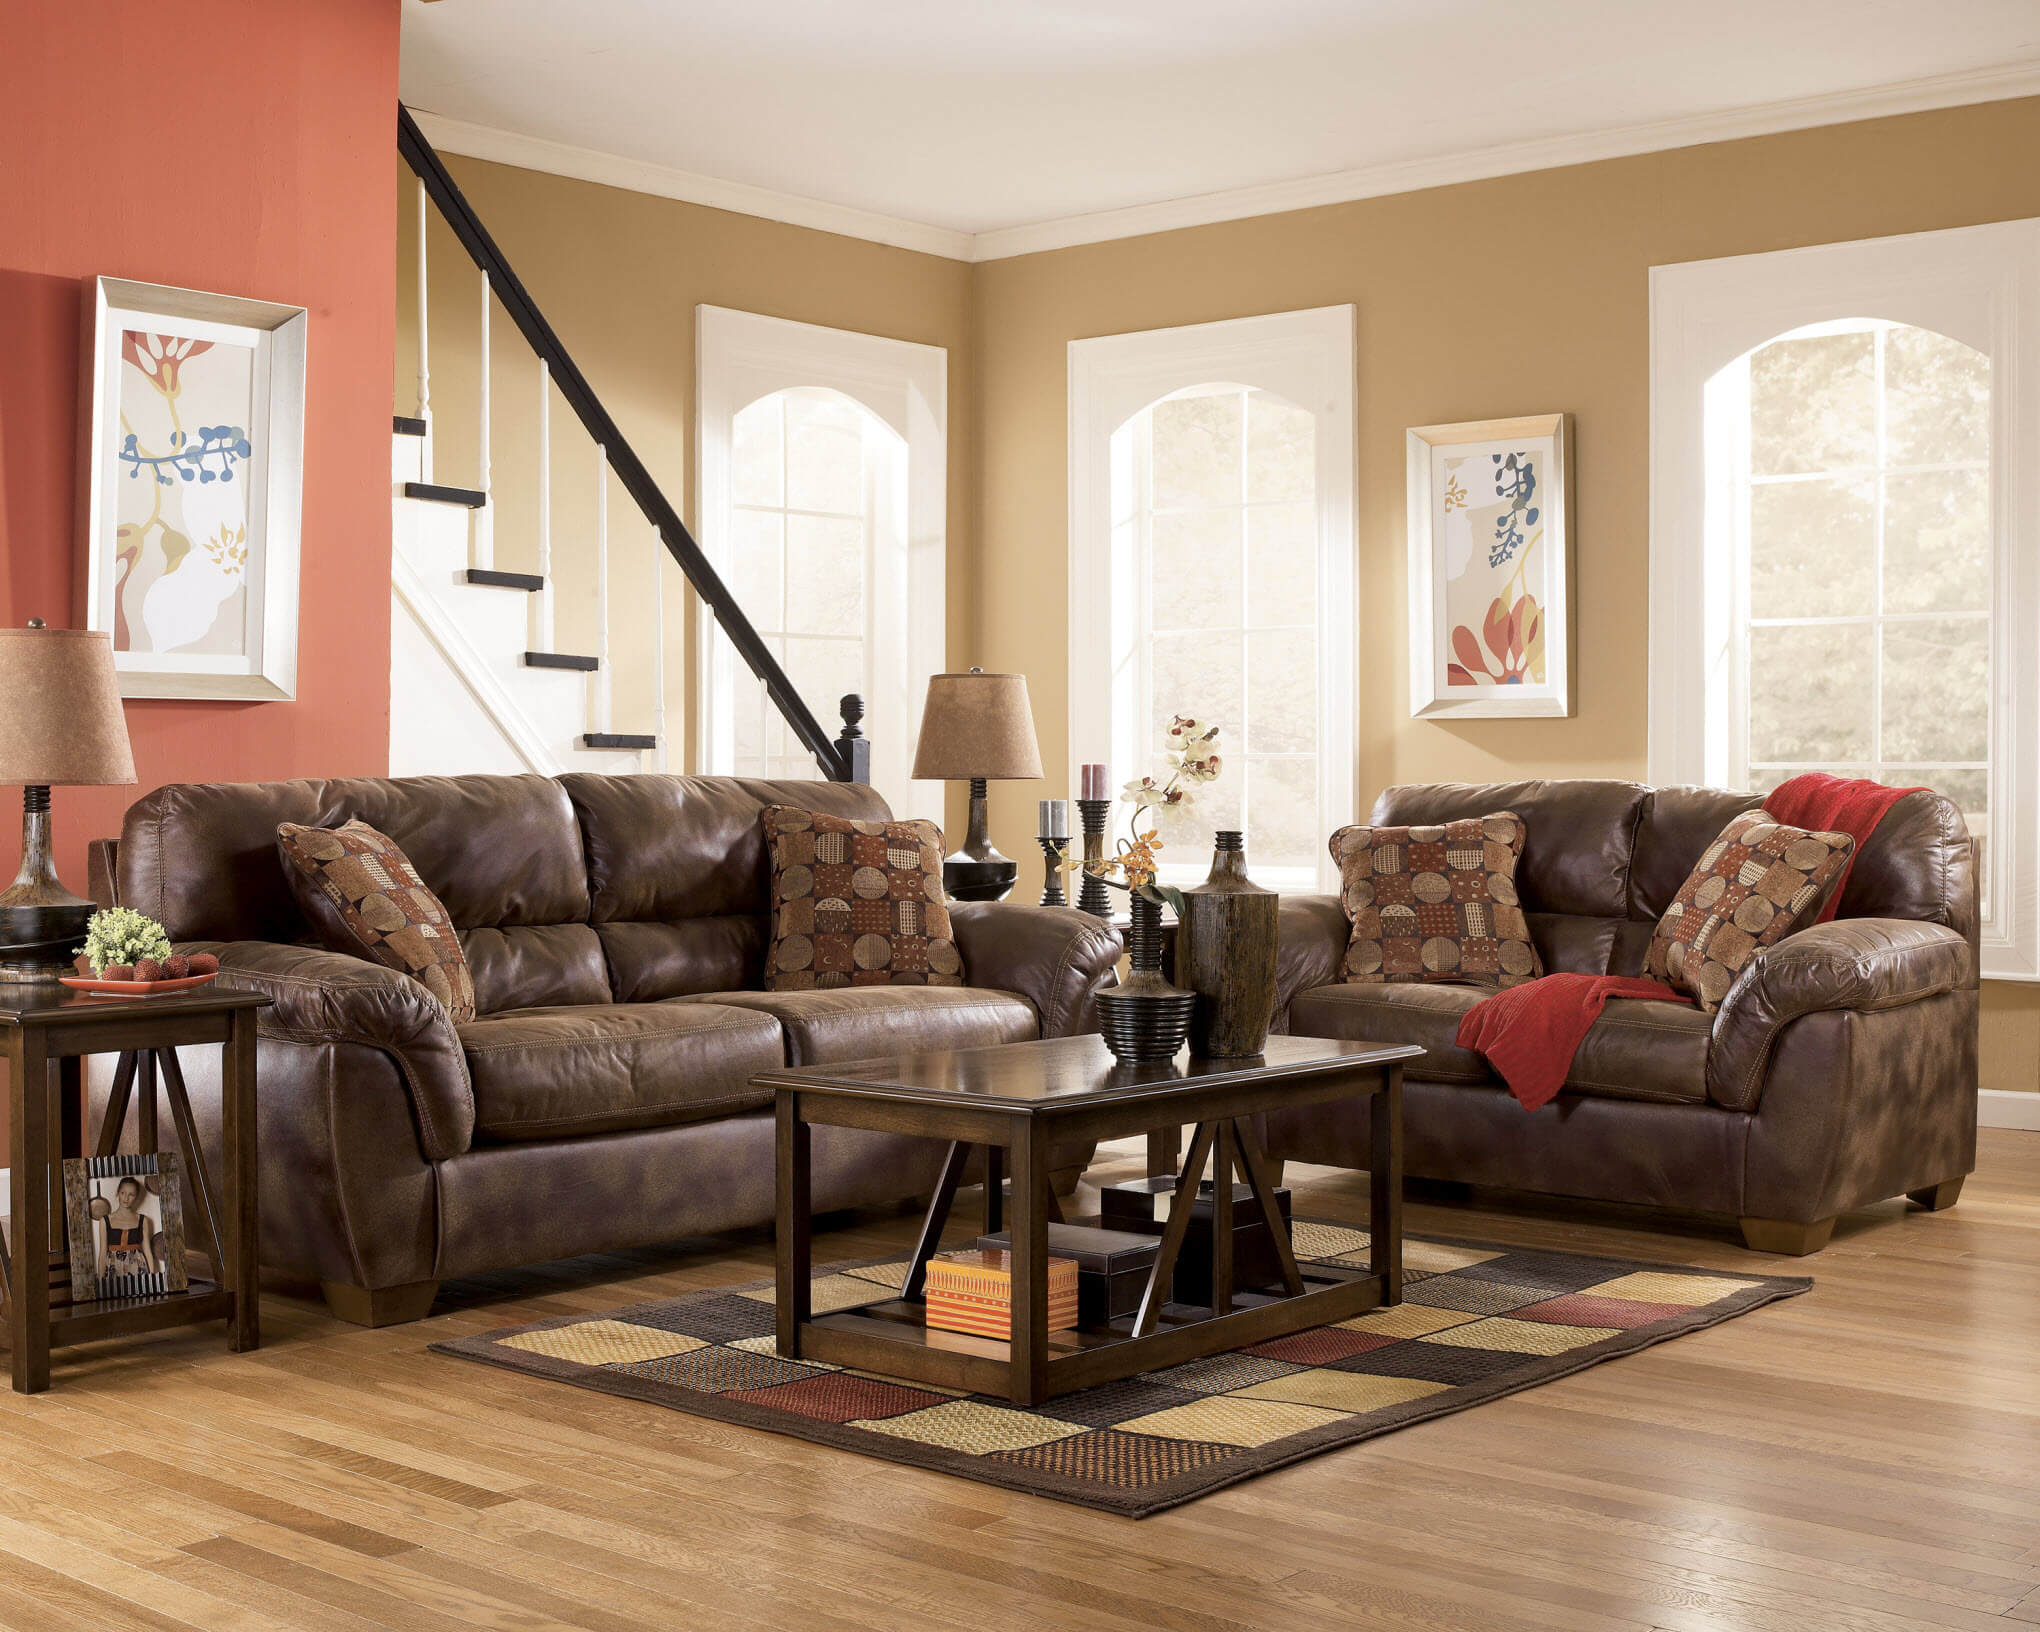 ashley furniture living room set frontier sofa and loveseat fabric living room sets 18062